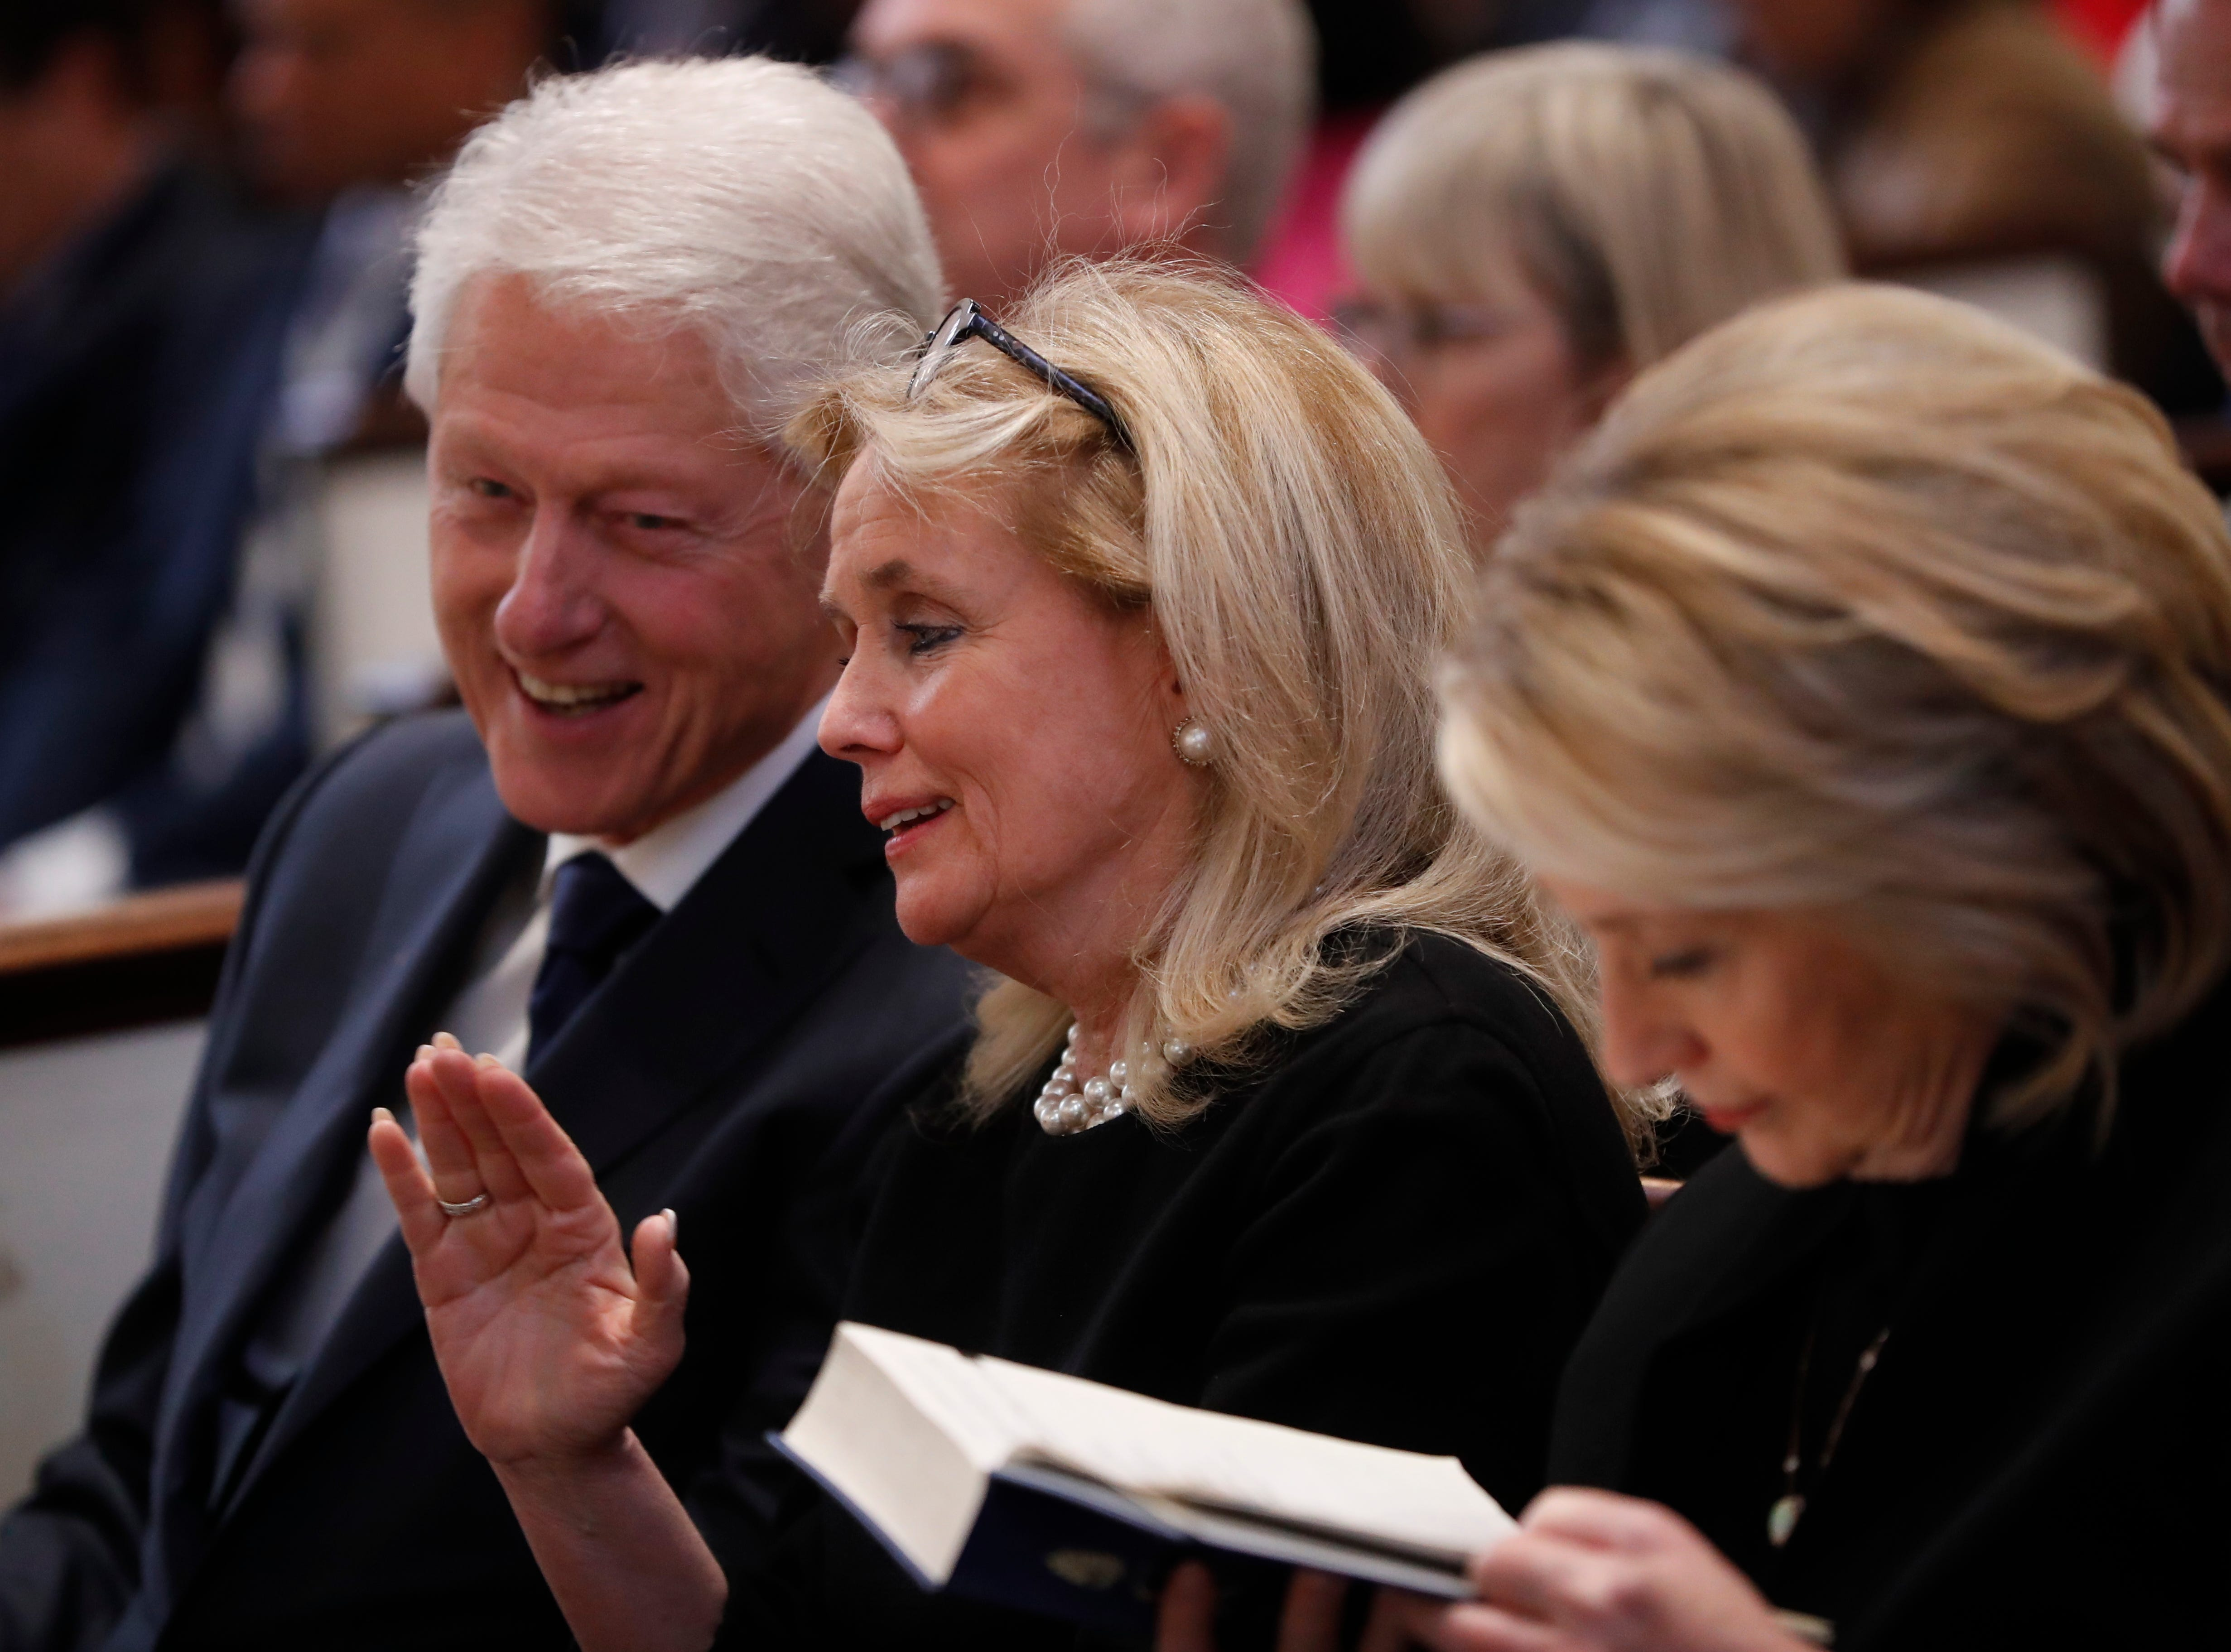 Rep. Debbie Dingell, D-Dearborn, center, talks with former President Bill Clinton and former Secretary of State Hillary Clinton during the funeral for her husband, former Rep. John Dingell, Thursday, Feb. 14, 2019 at Holy Trinity Catholic Church in Washington.